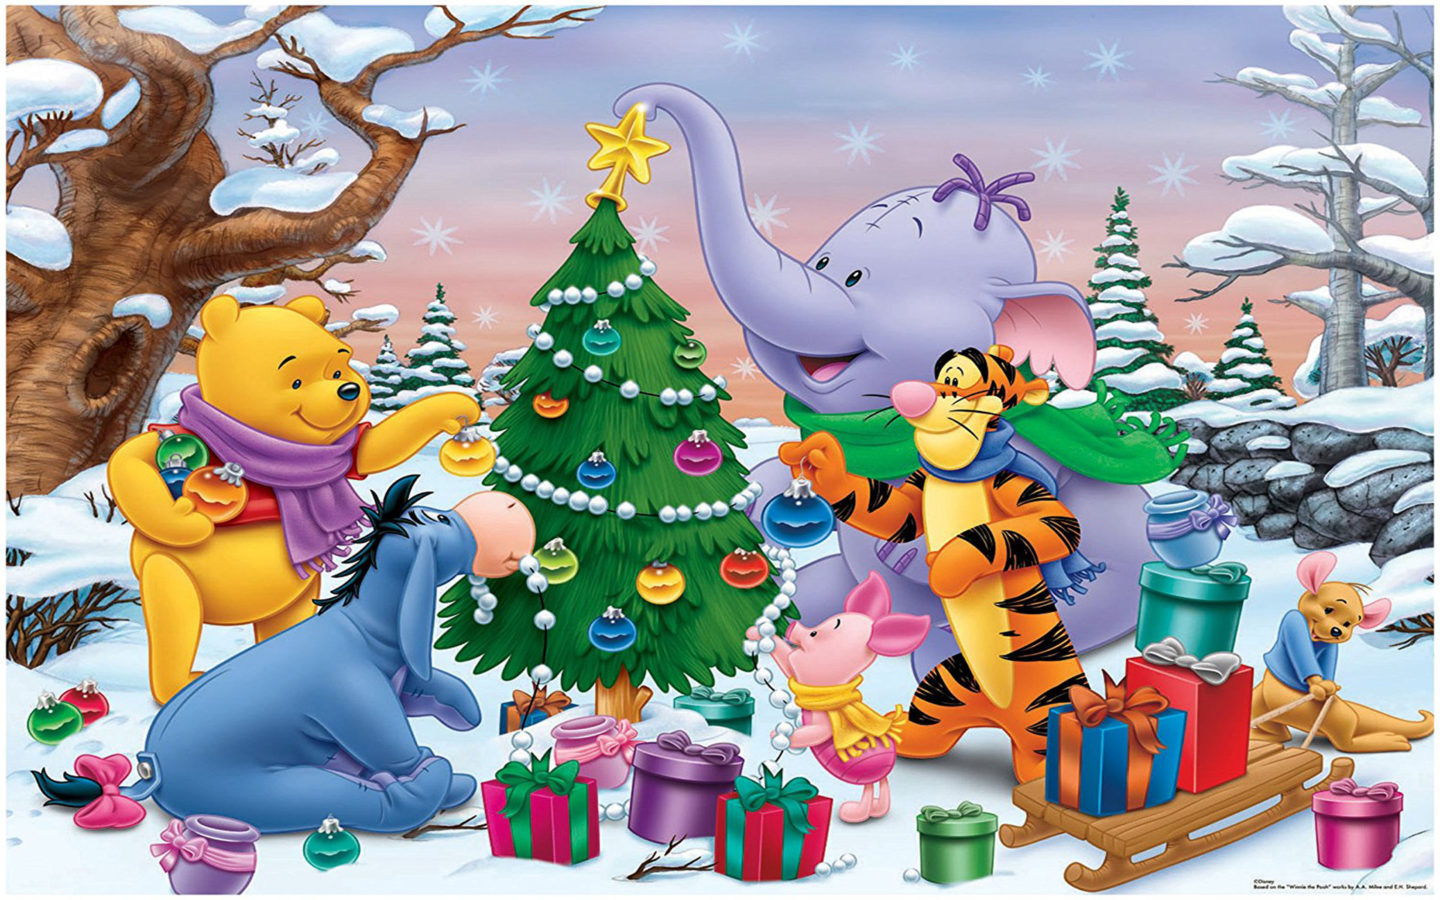 Pooh Bear Iphone Wallpaper Cartoon Winnie The Pooh And Friends Decorating The